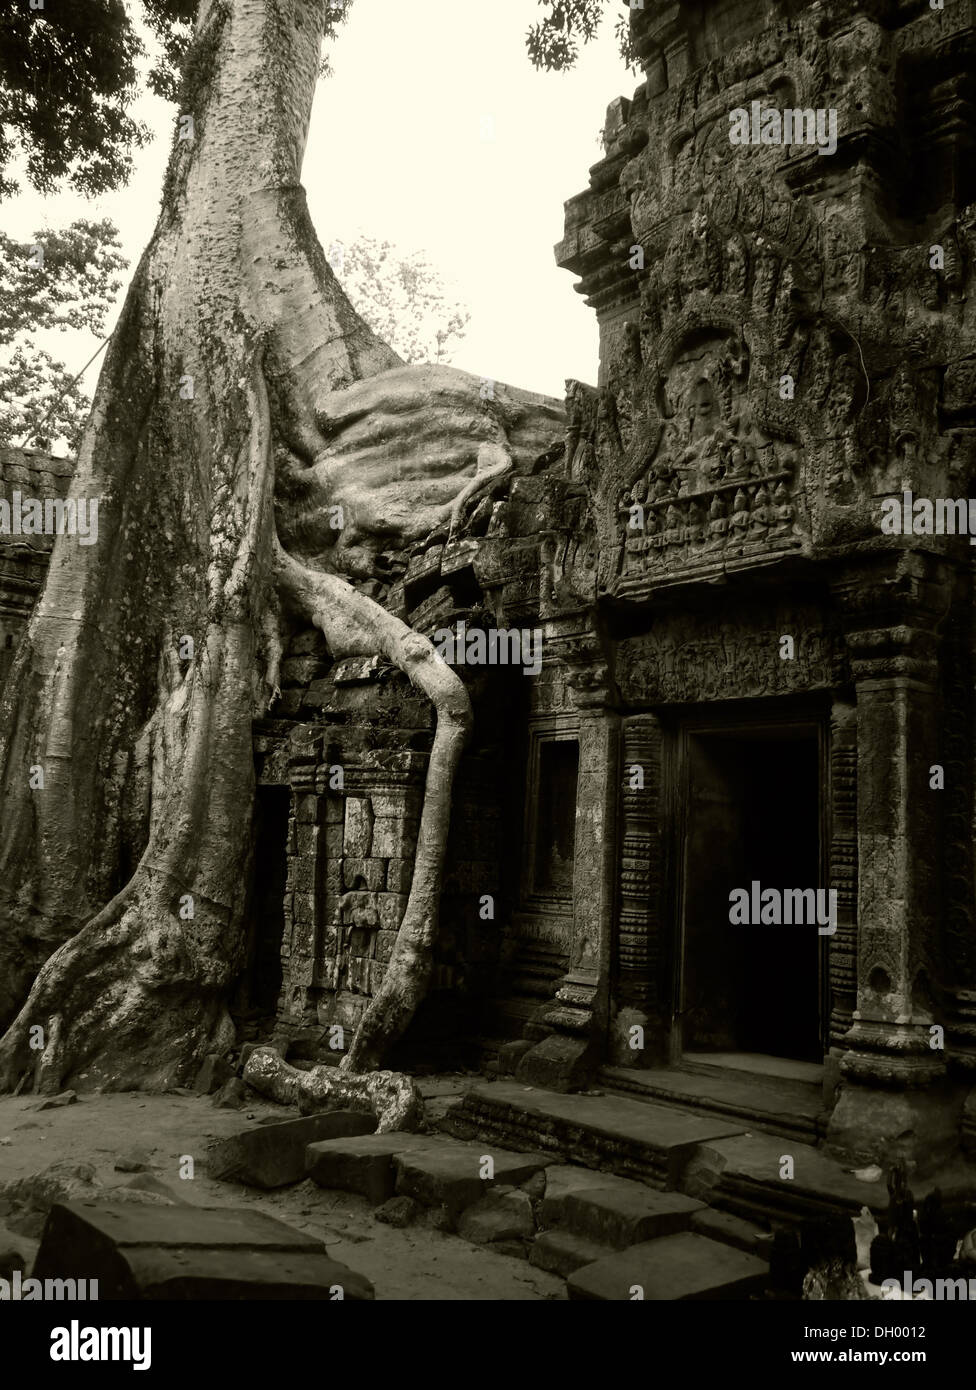 Taken at the overgrown Cambodian temples near Ankor Wat - Stock Image